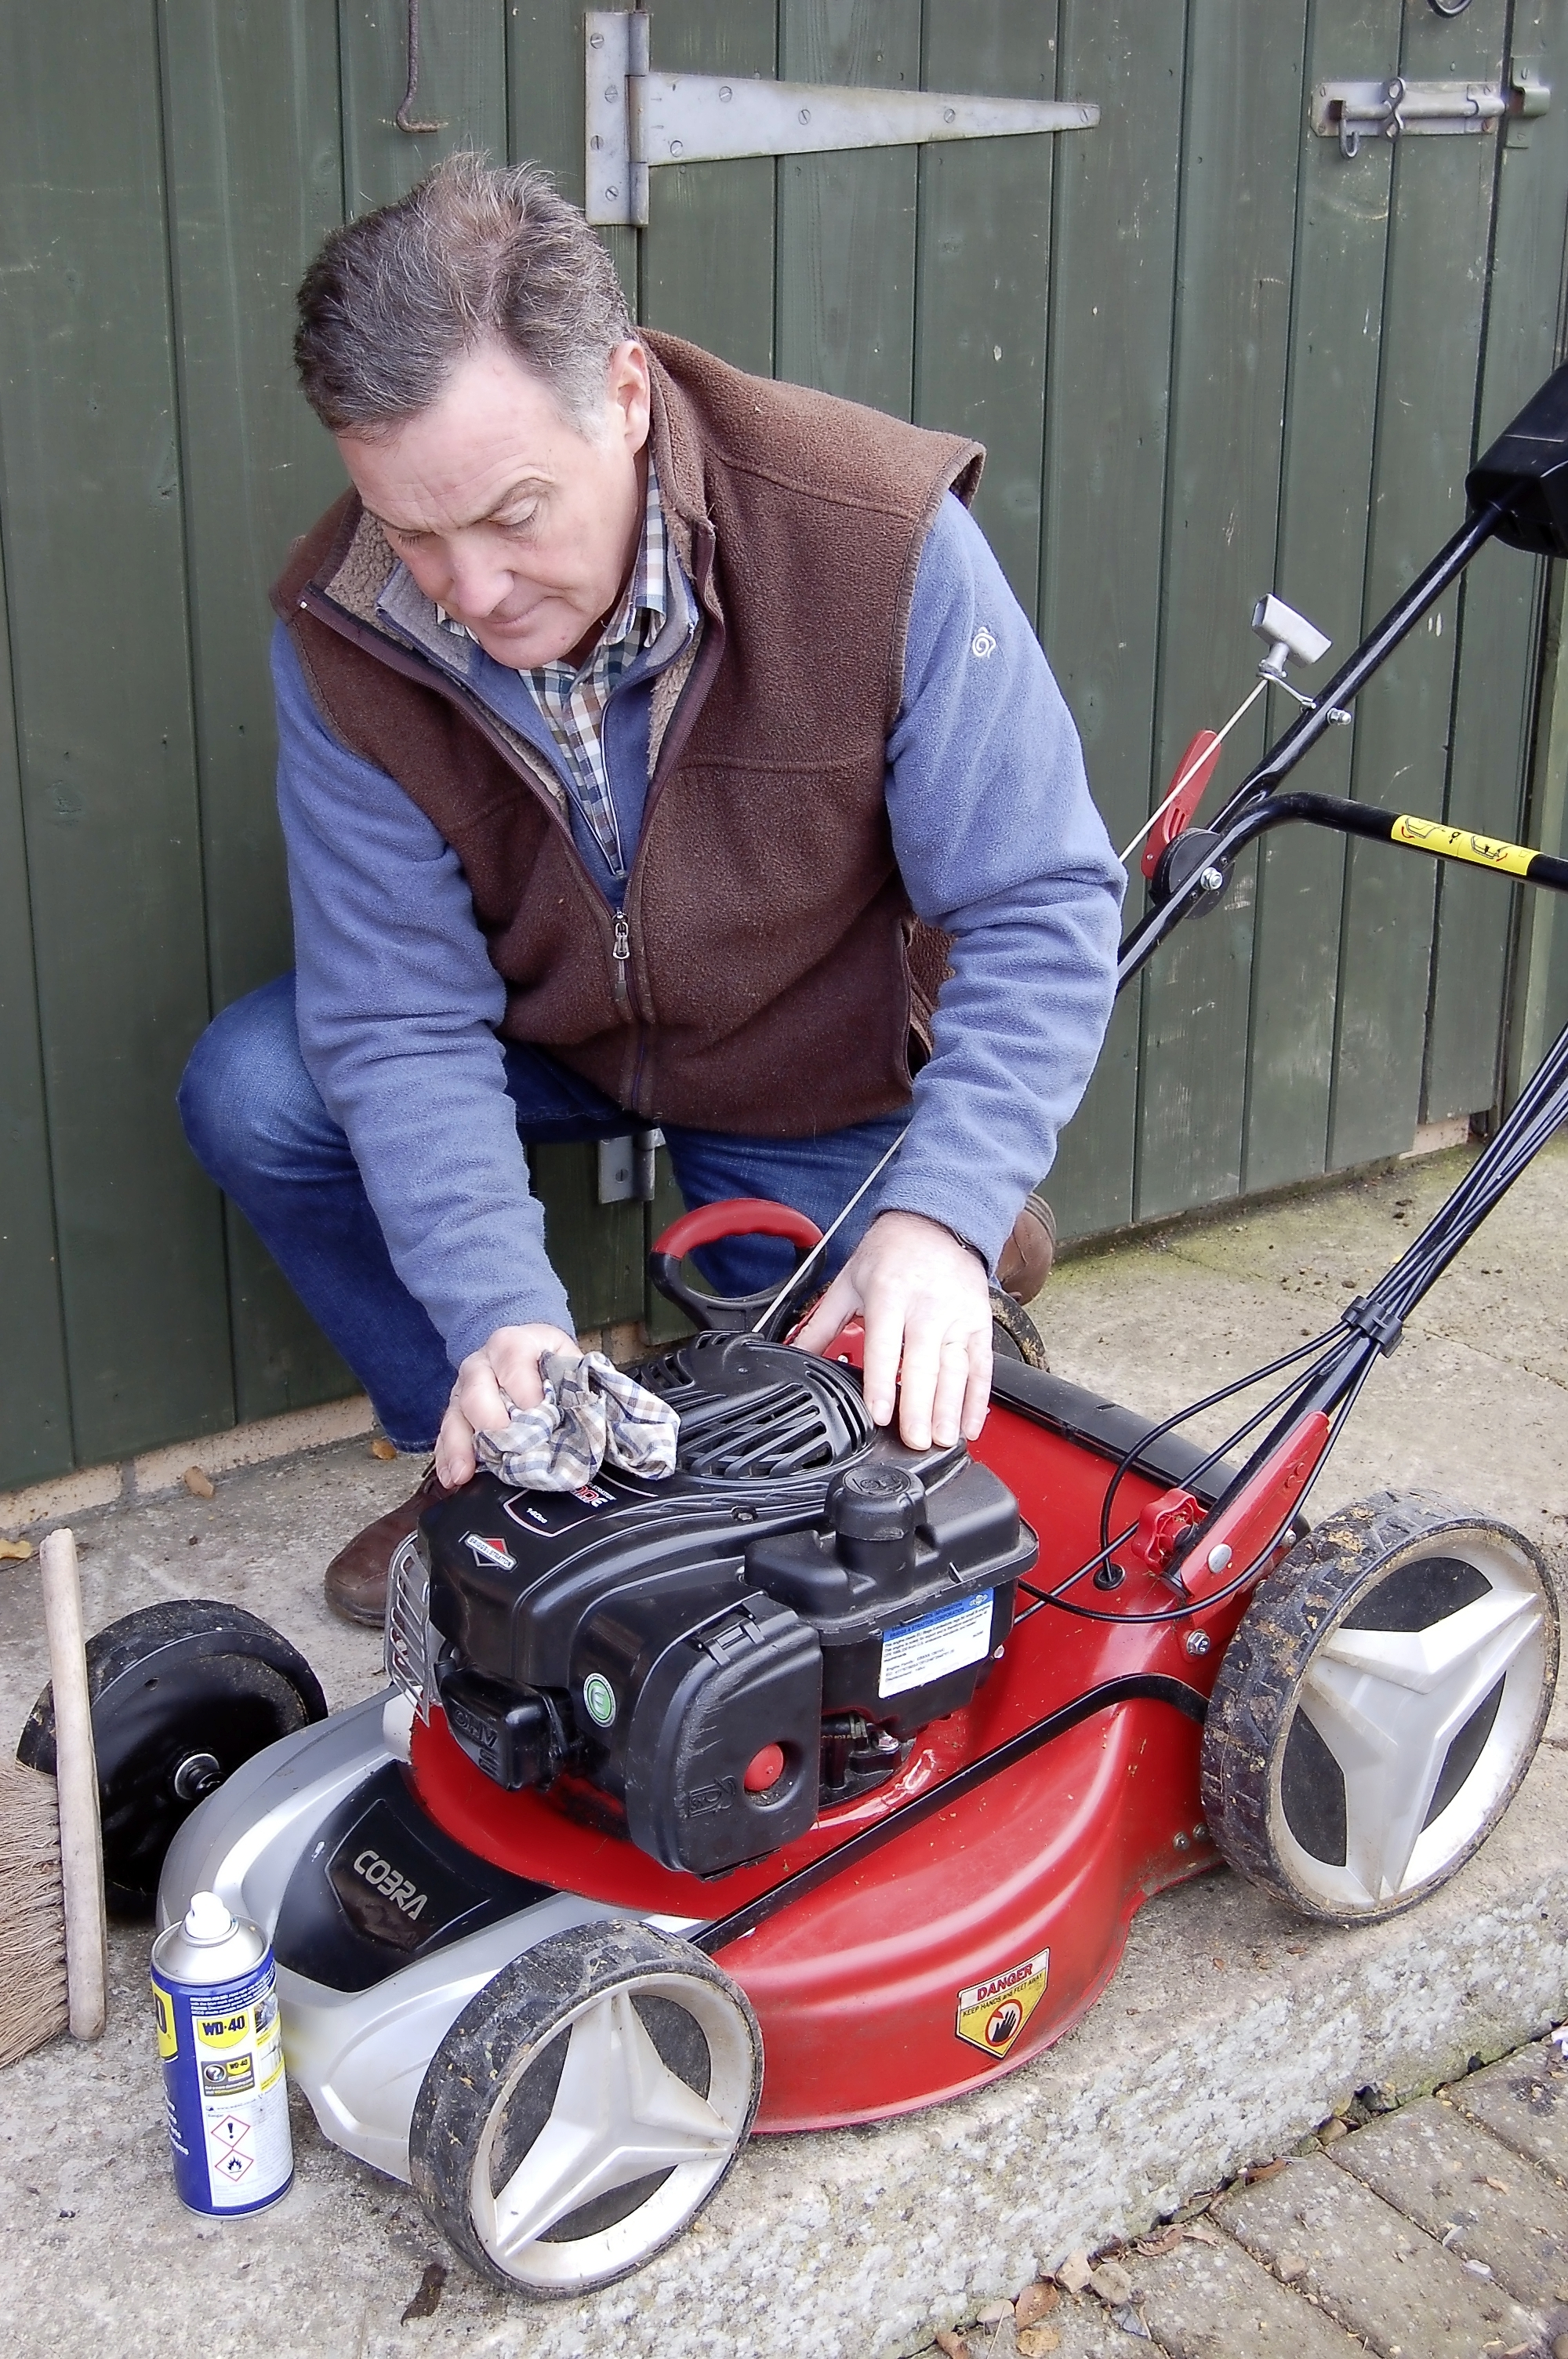 Clean and store mower - main pic.jpg